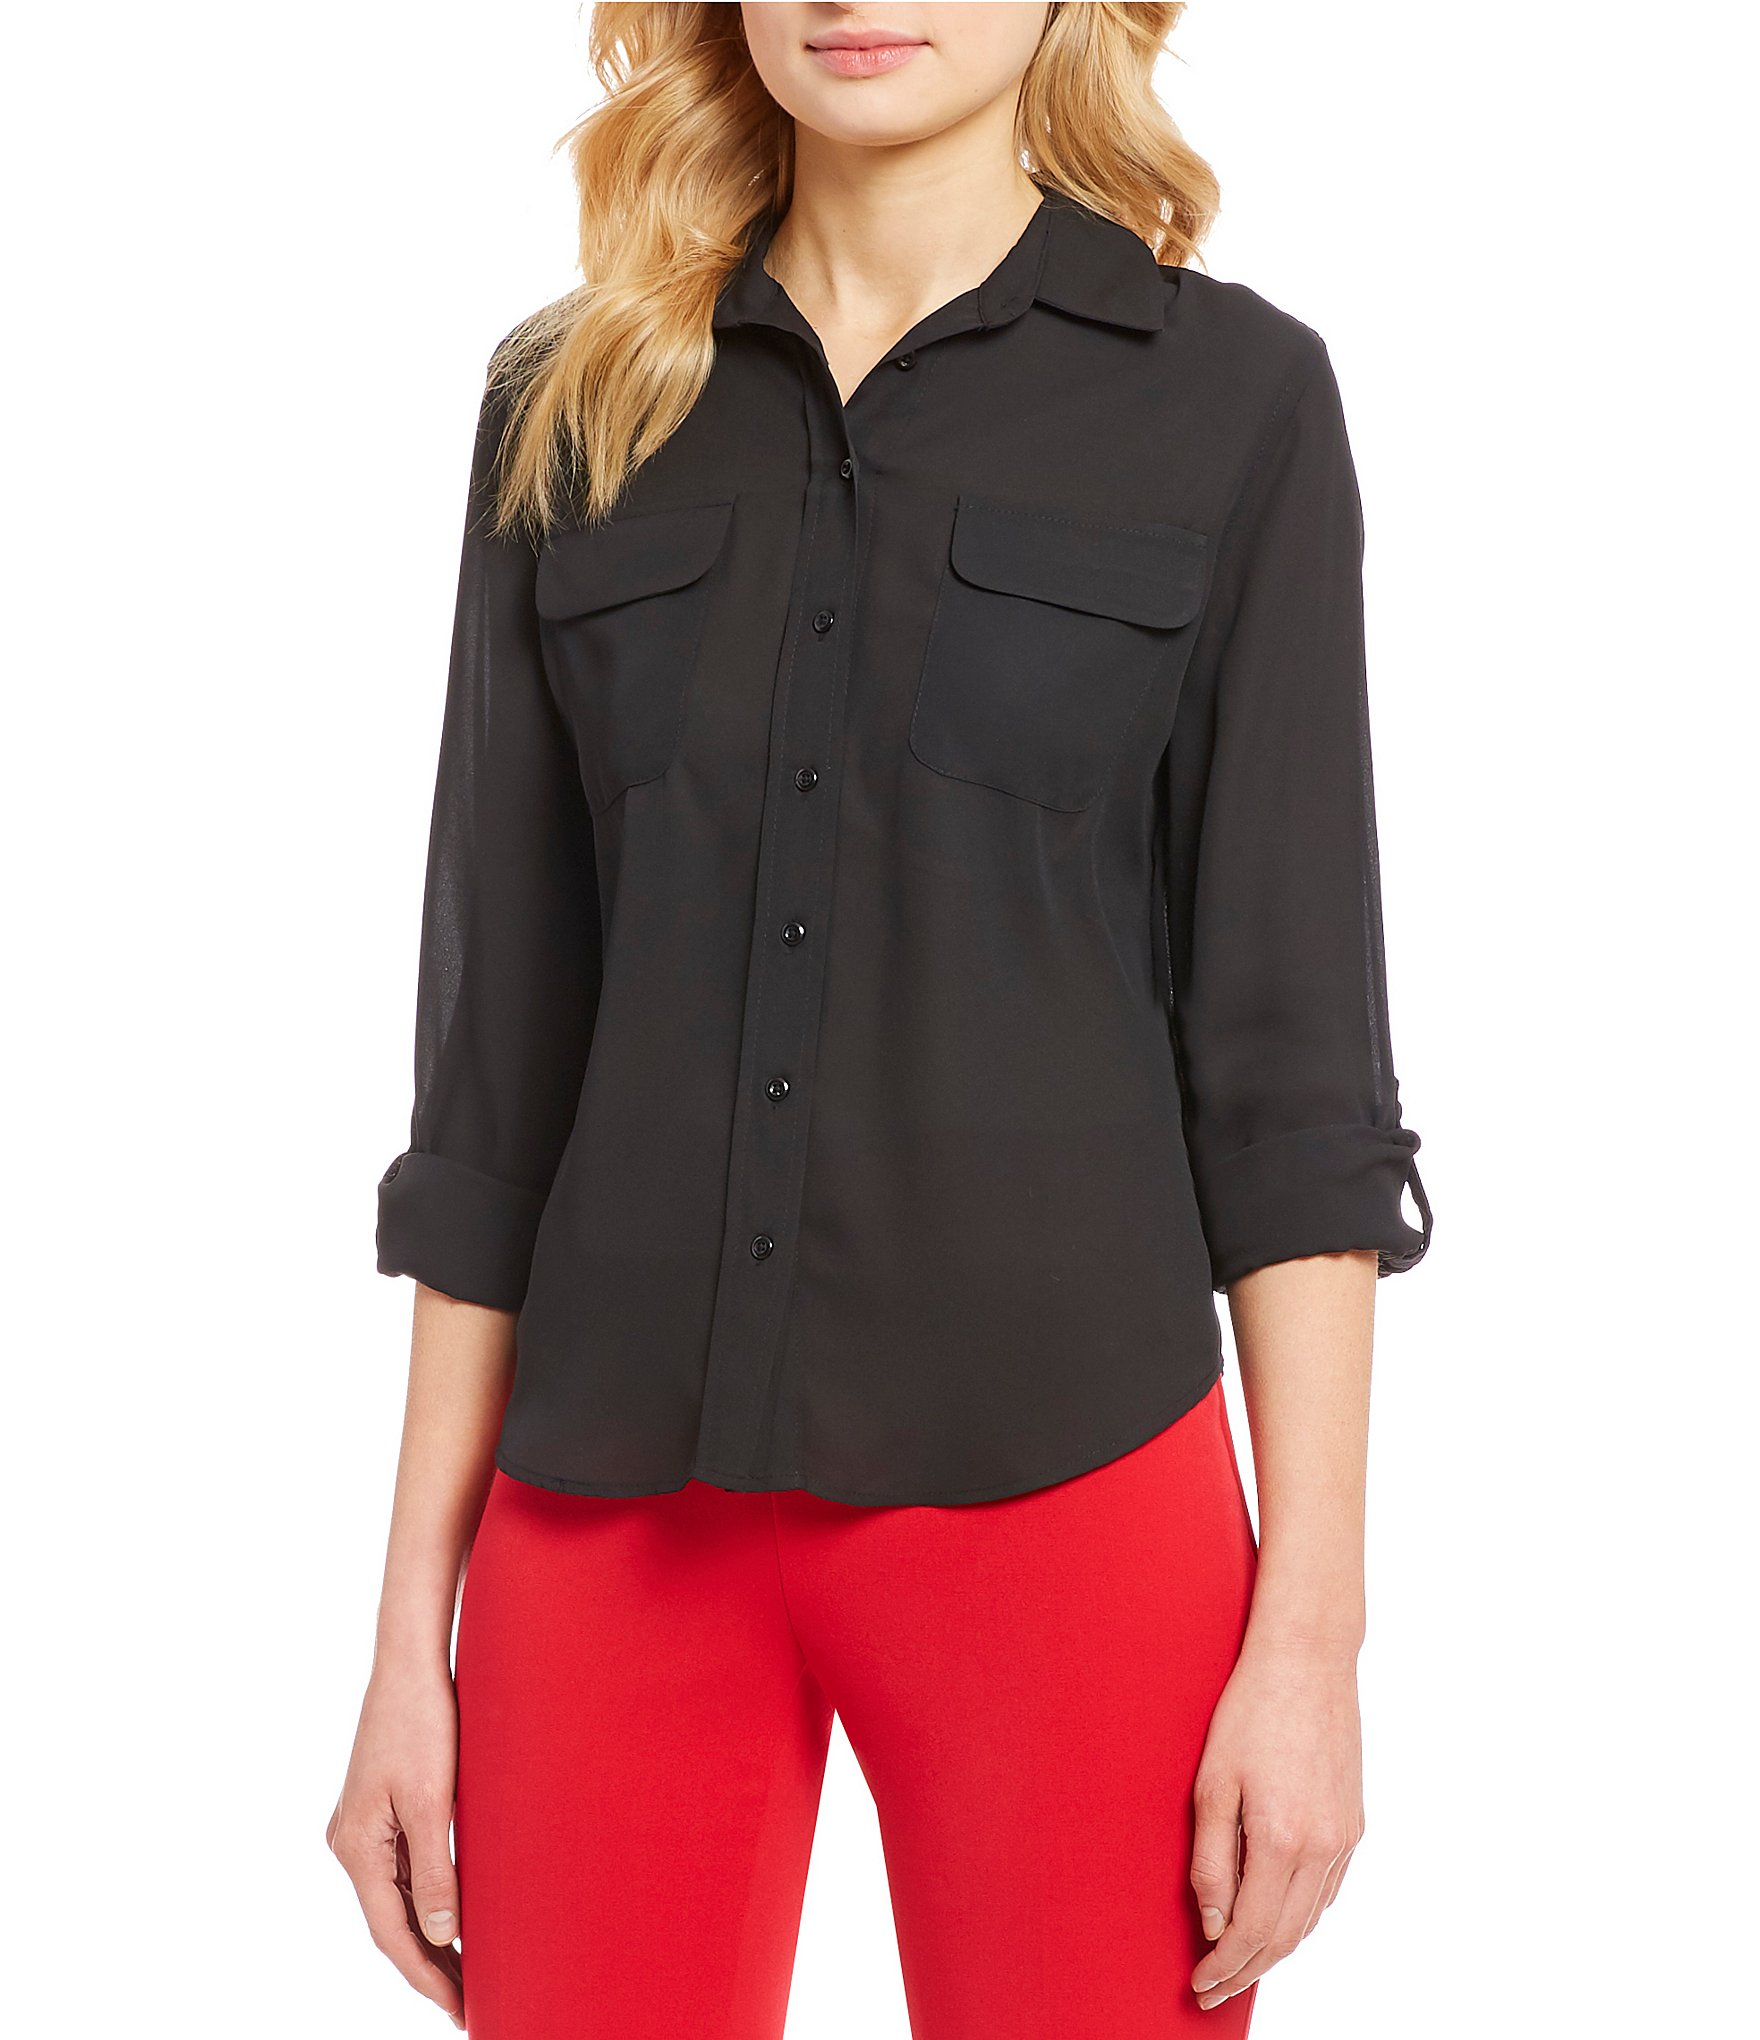 8f0b7eab1a73ef Investments Petite Olivia Long Sleeve Button Front Utility Blouse |  Dillard's